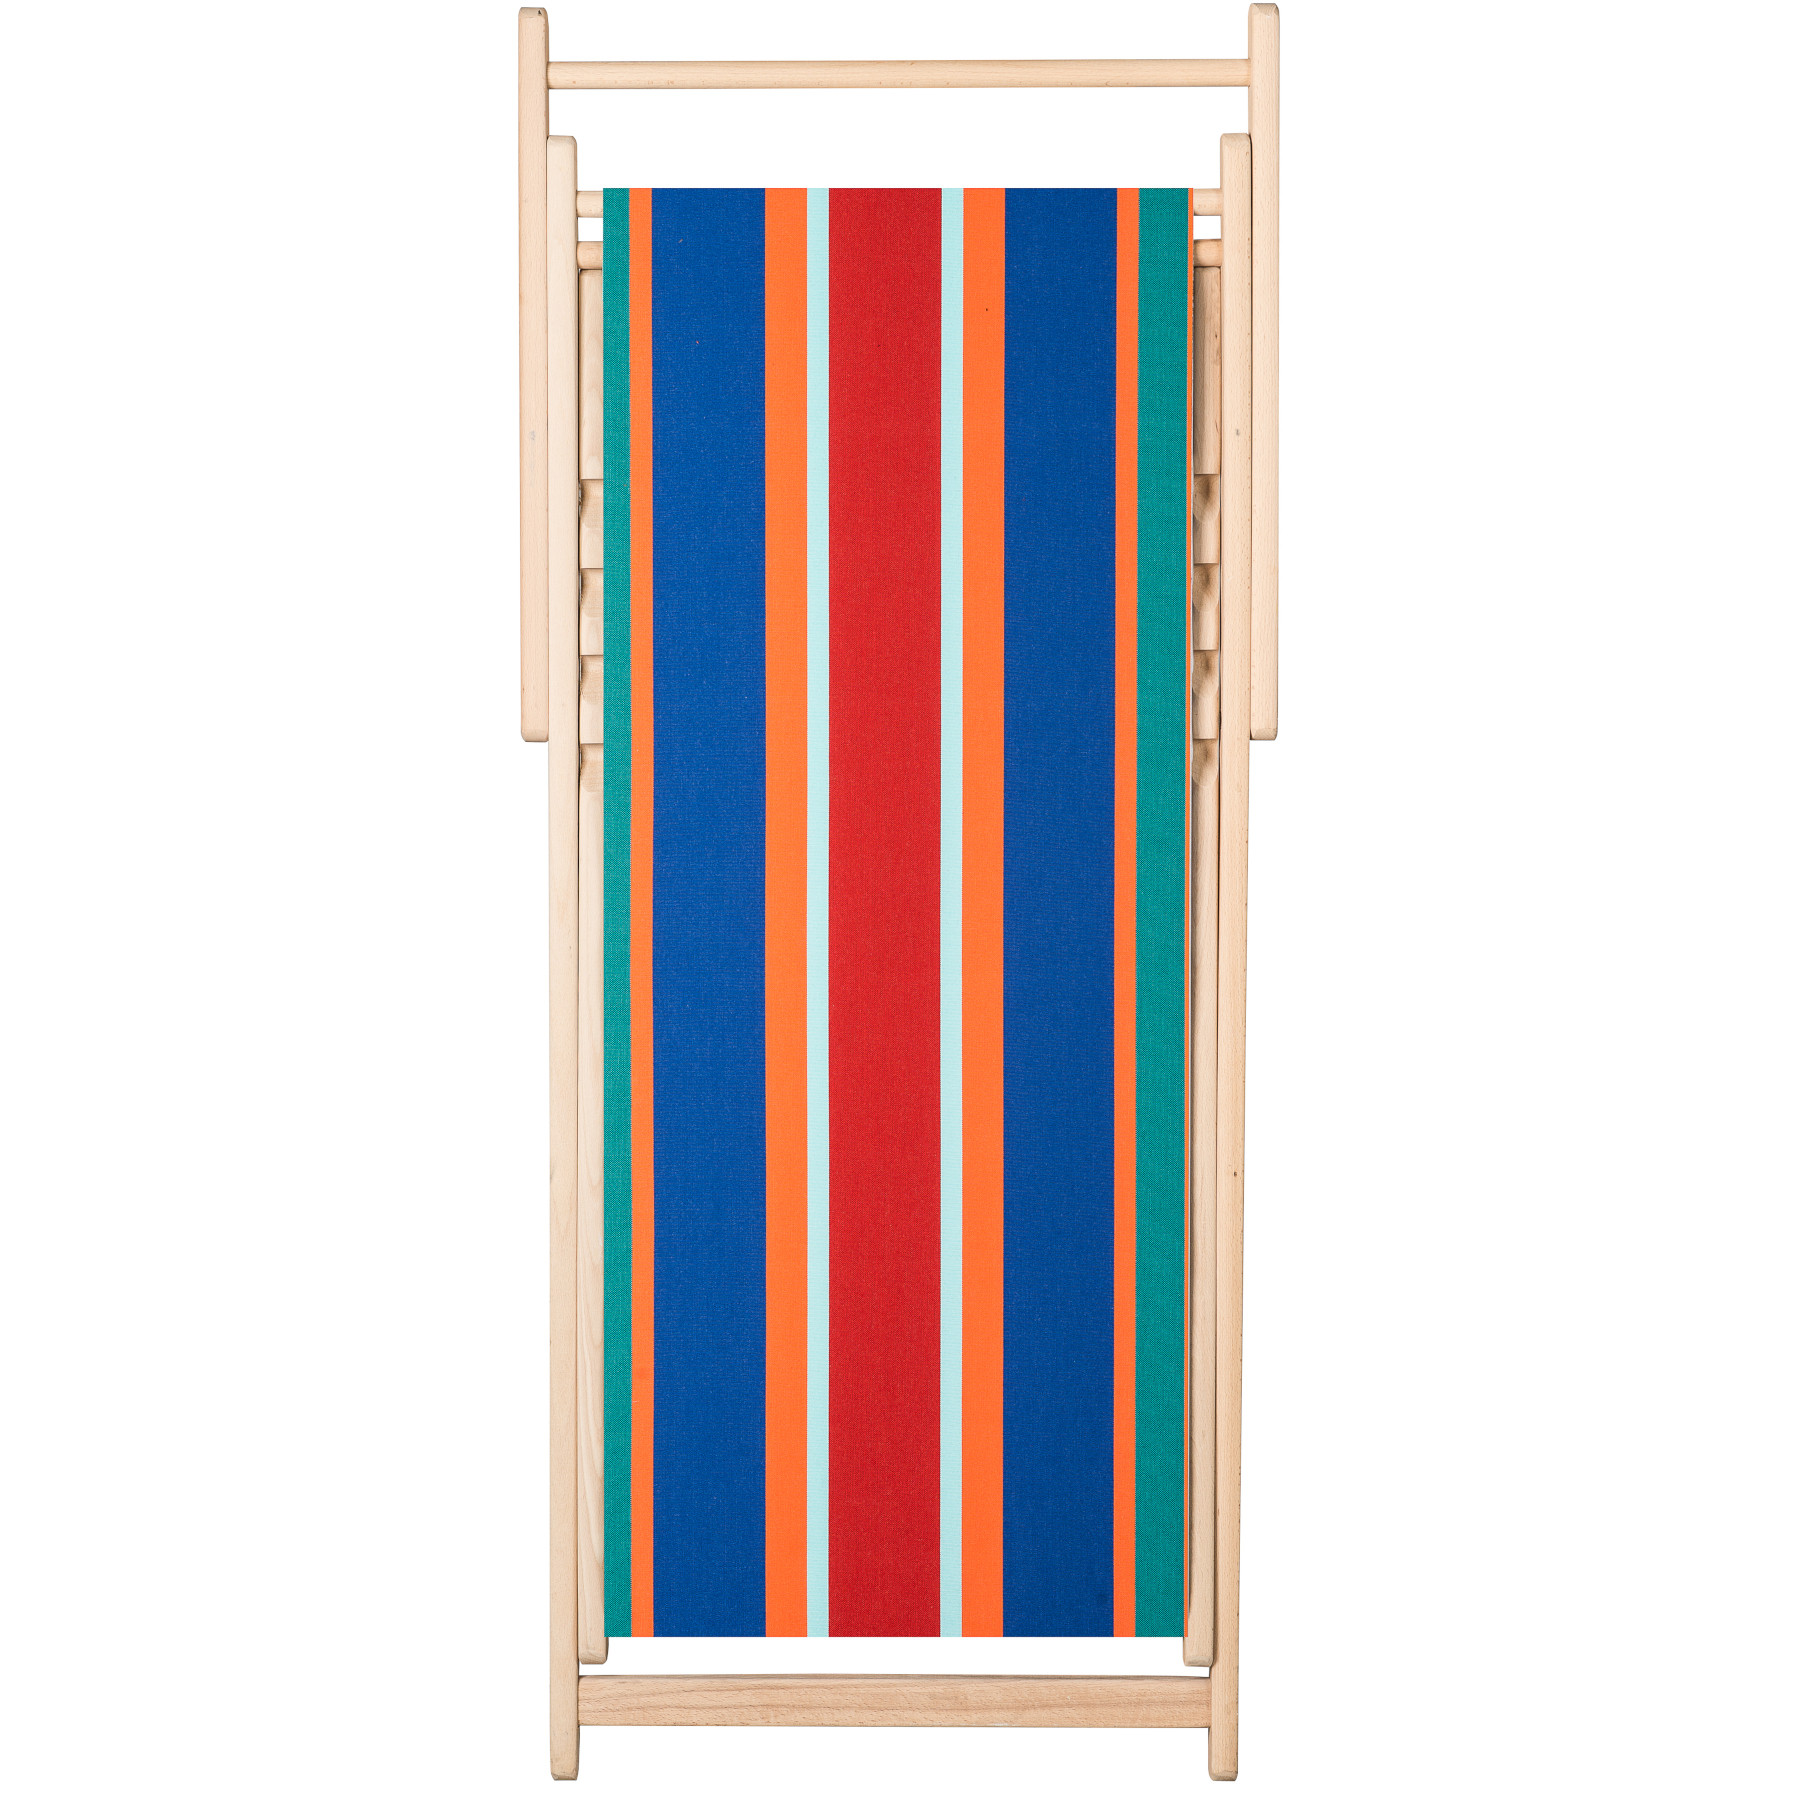 Acrylic removable canvas for deckchair LES PLANCHES